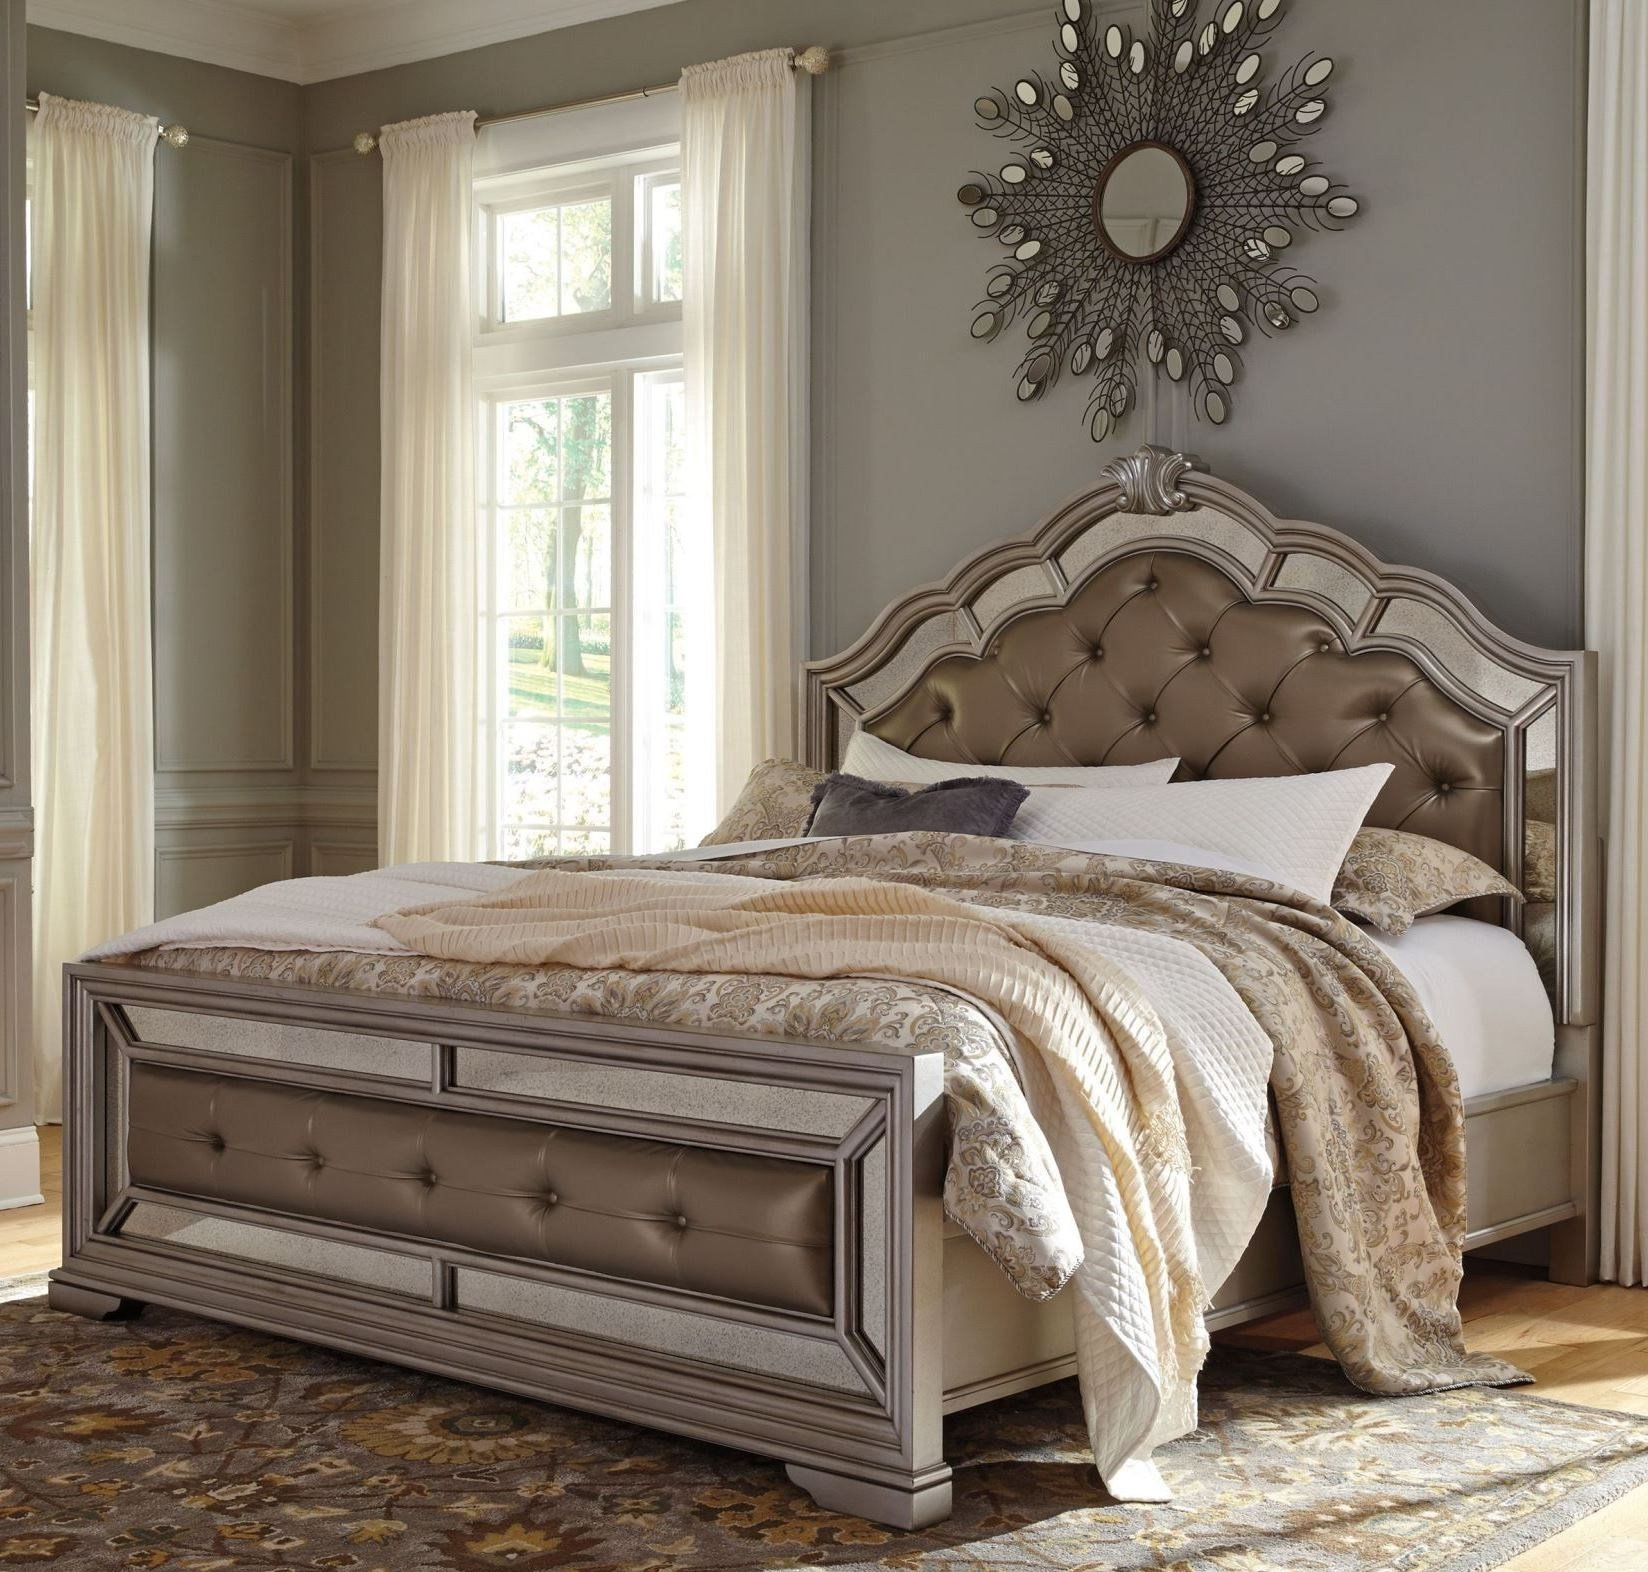 Best Birlanny Silver Upholstered Panel Bedroom Set B720 57 54 With Pictures